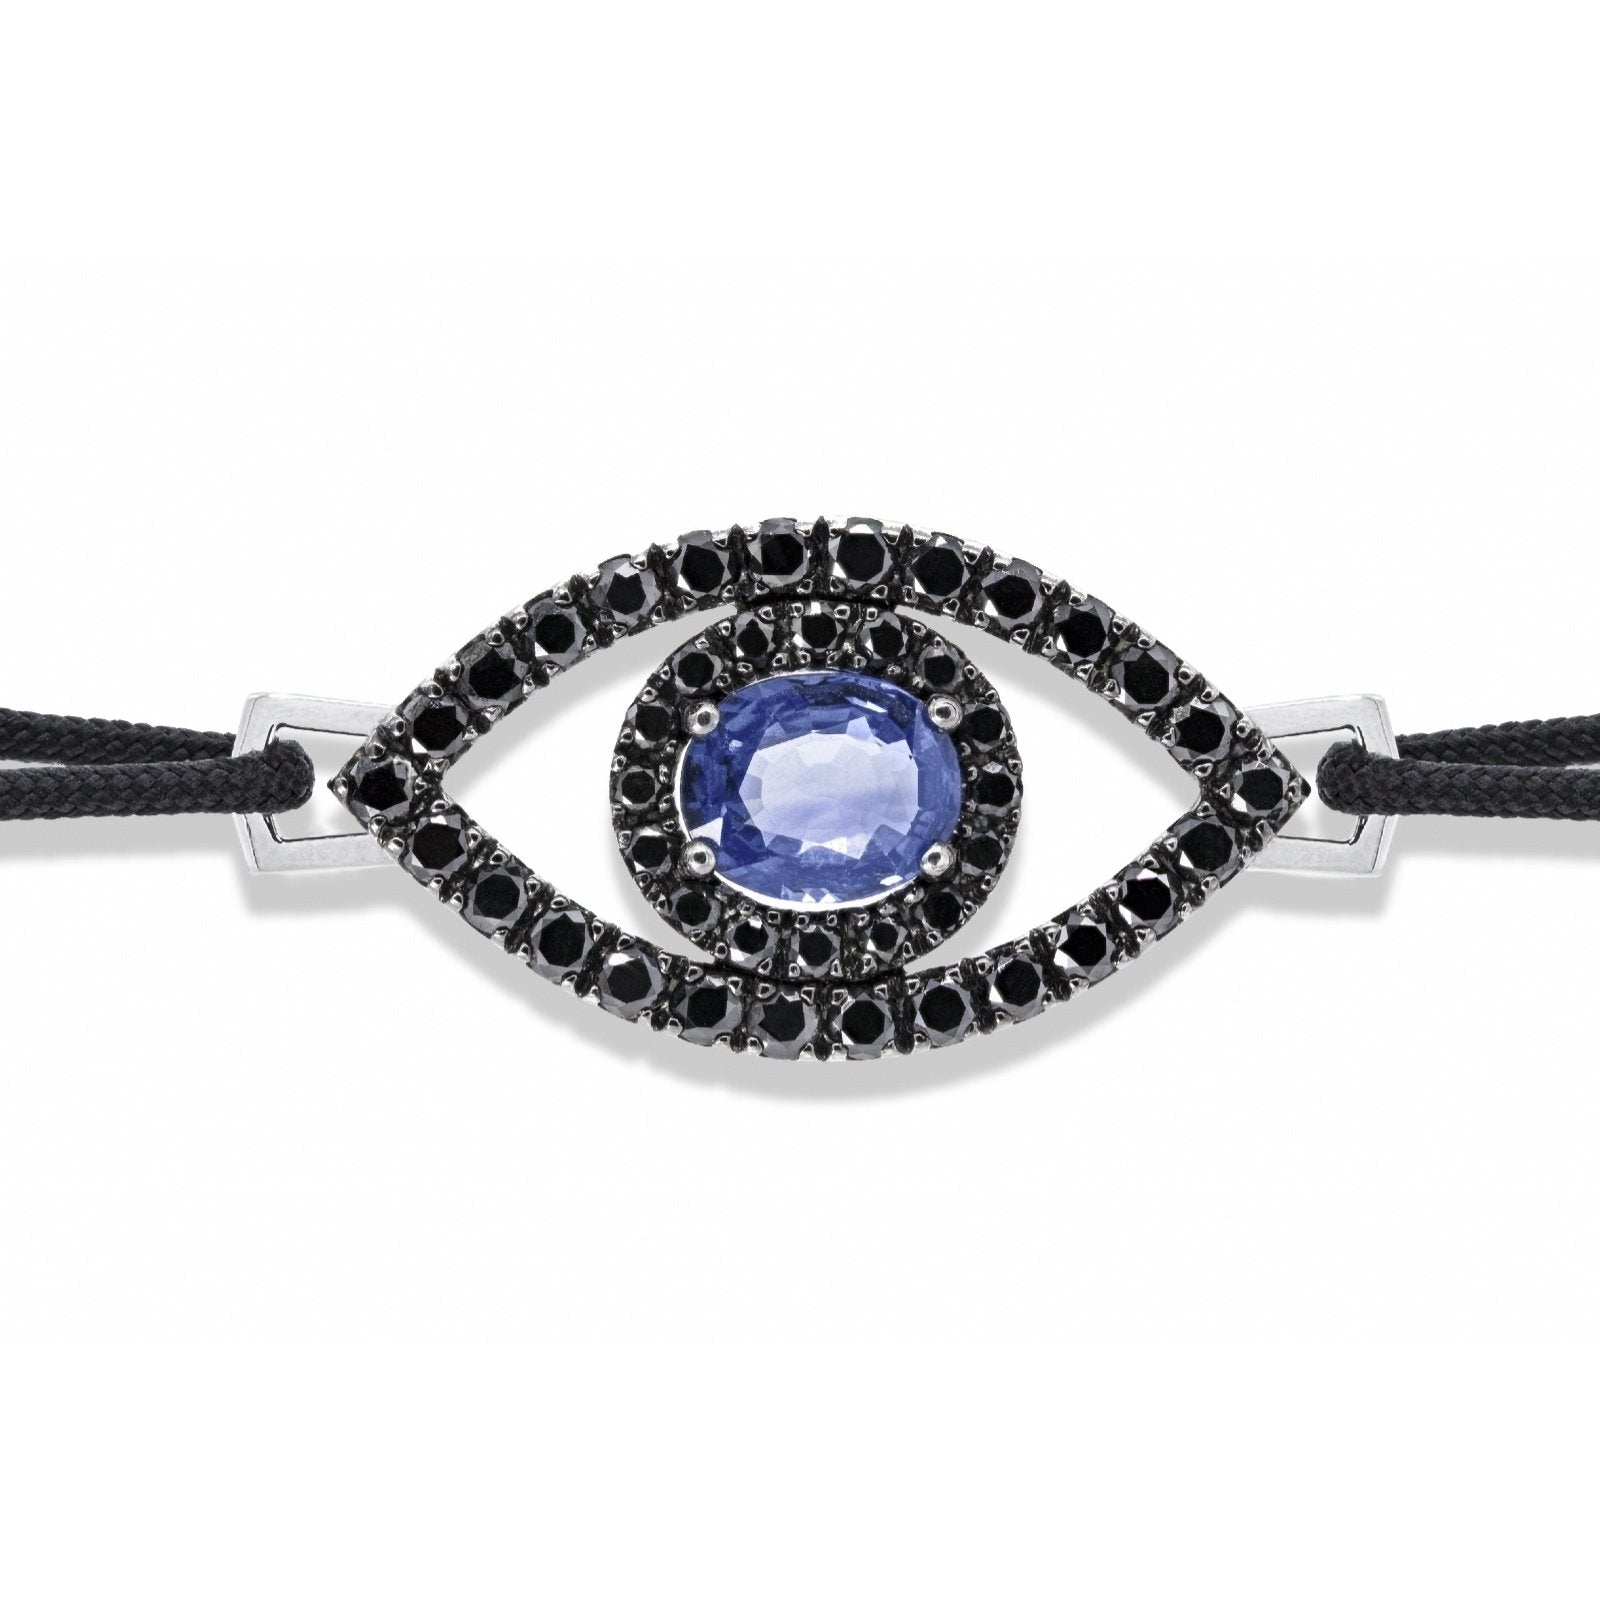 Eye of Protection - Ceylon Sapphire & Black on Black Diamond Bracelet | Shirin Uma